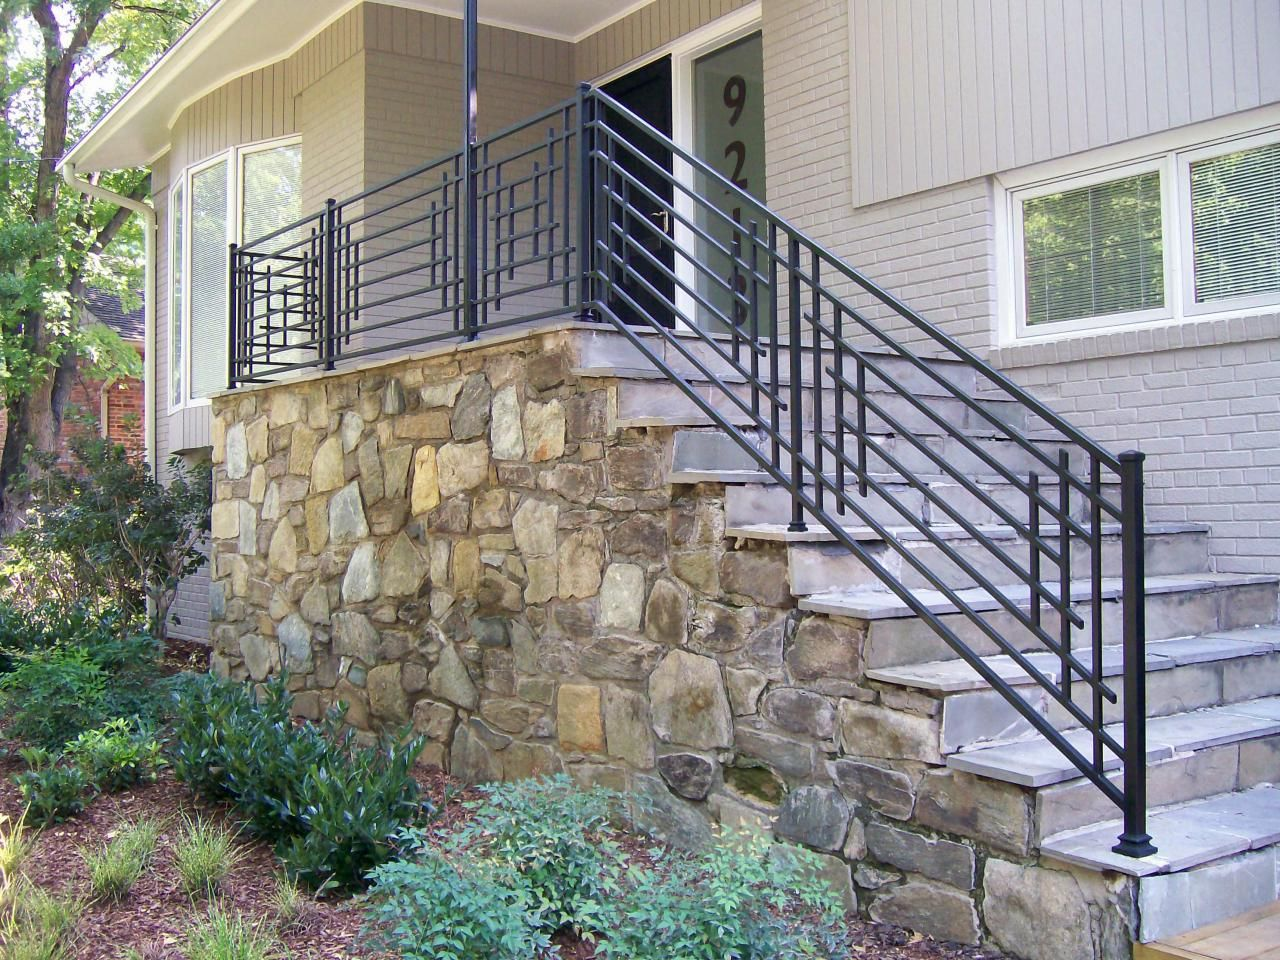 Outdoor Stone Steps And Iron Railing Railings Outdoor Outdoor   Outdoor Railings For Stone Steps   Screen Porch   Modern Outdoor   Backyard   Stone Patio   Fancy